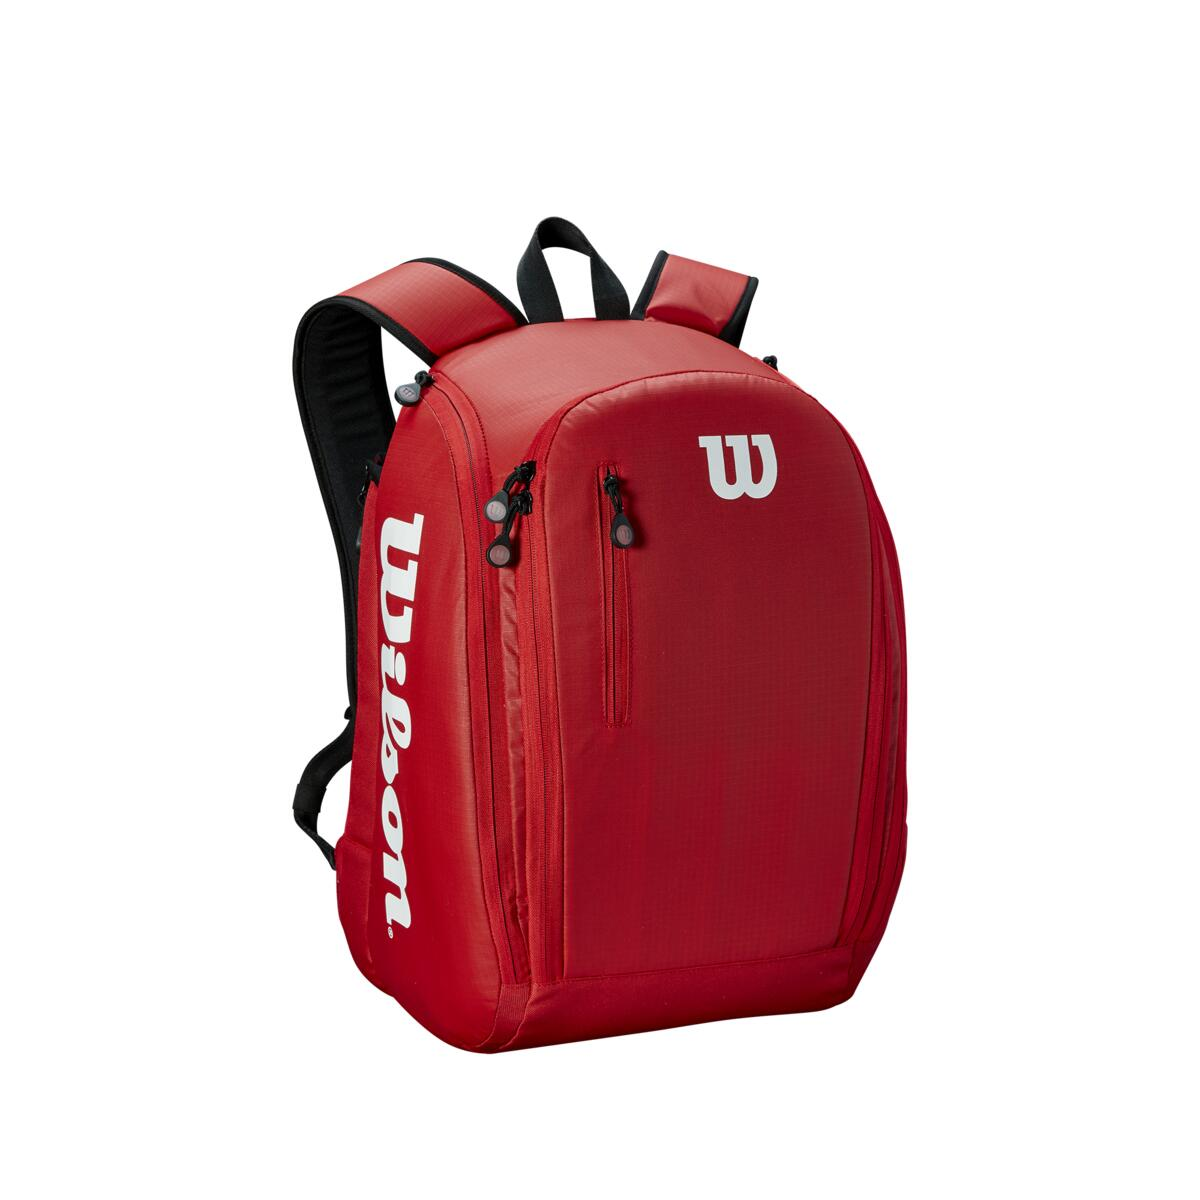 WRZ847996_0_Tour_Backpack_Red_Black_Front.png.cq5dam.web.1200.1200